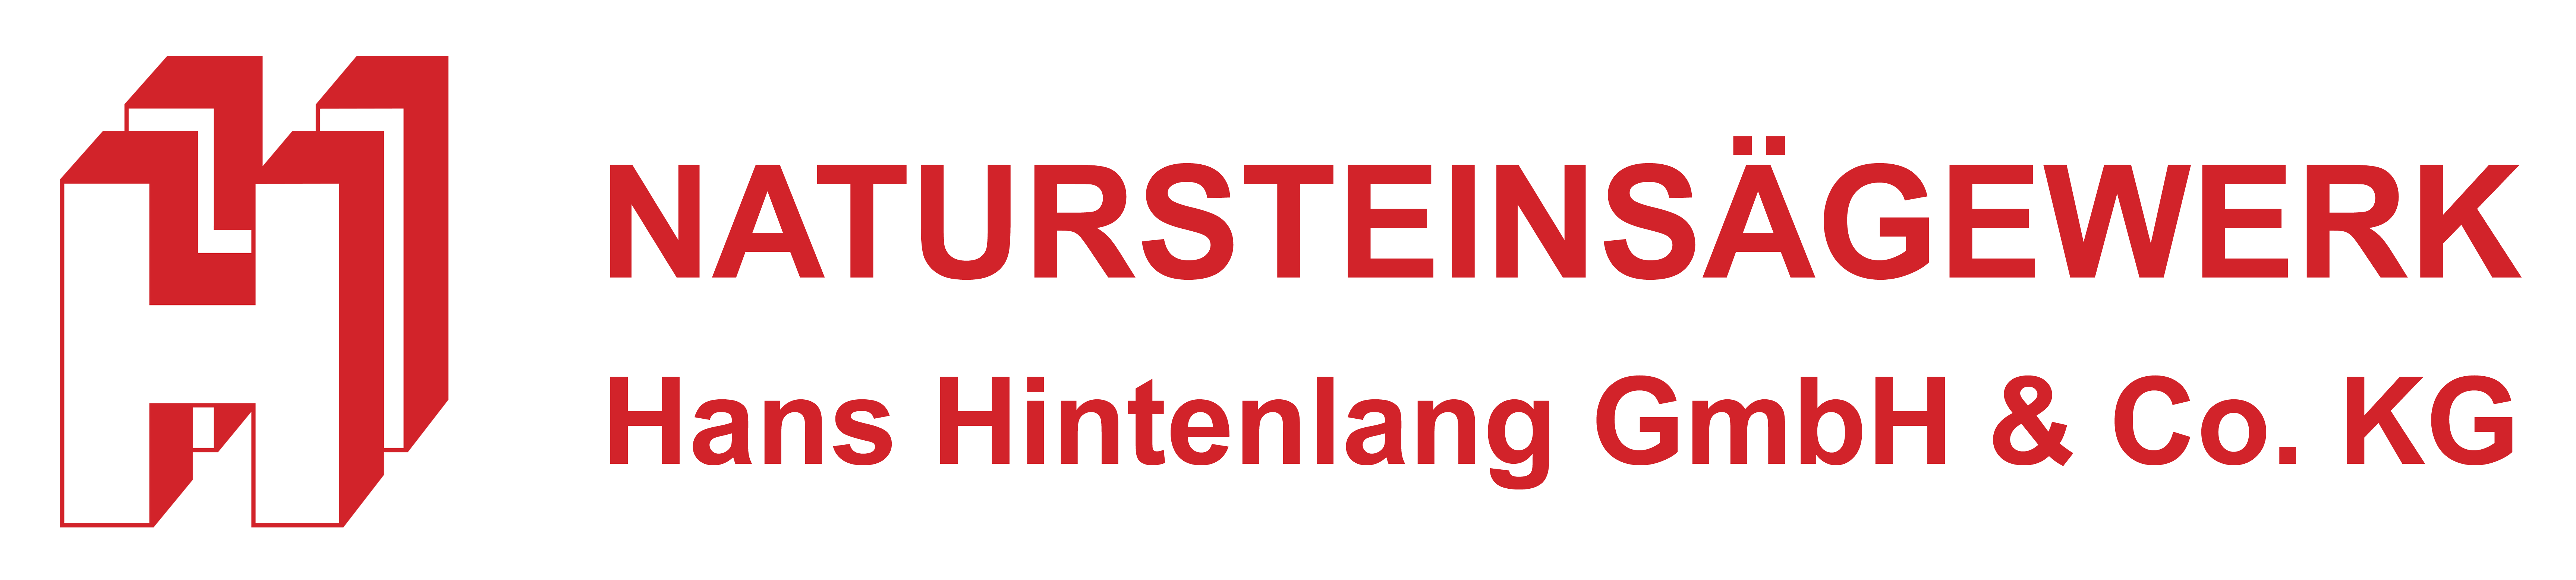 natursteinwerk-hintenlang.de